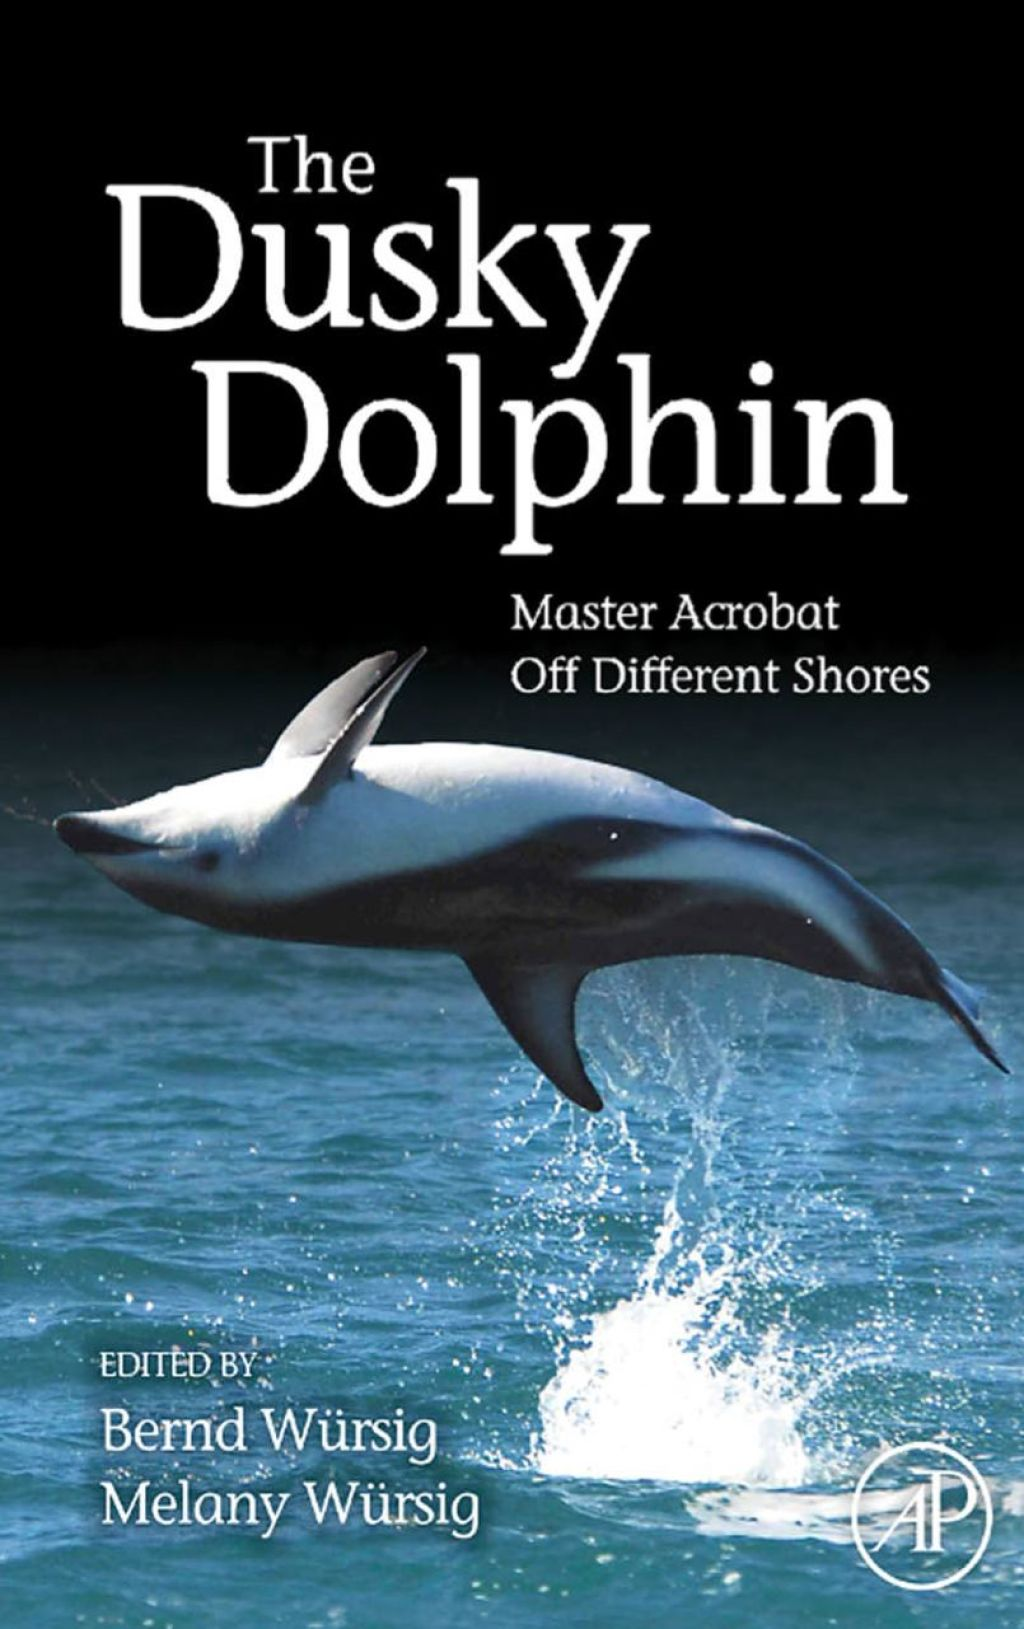 The Dusky Dolphin: Master Acrobat Off Different Shores (ebook)